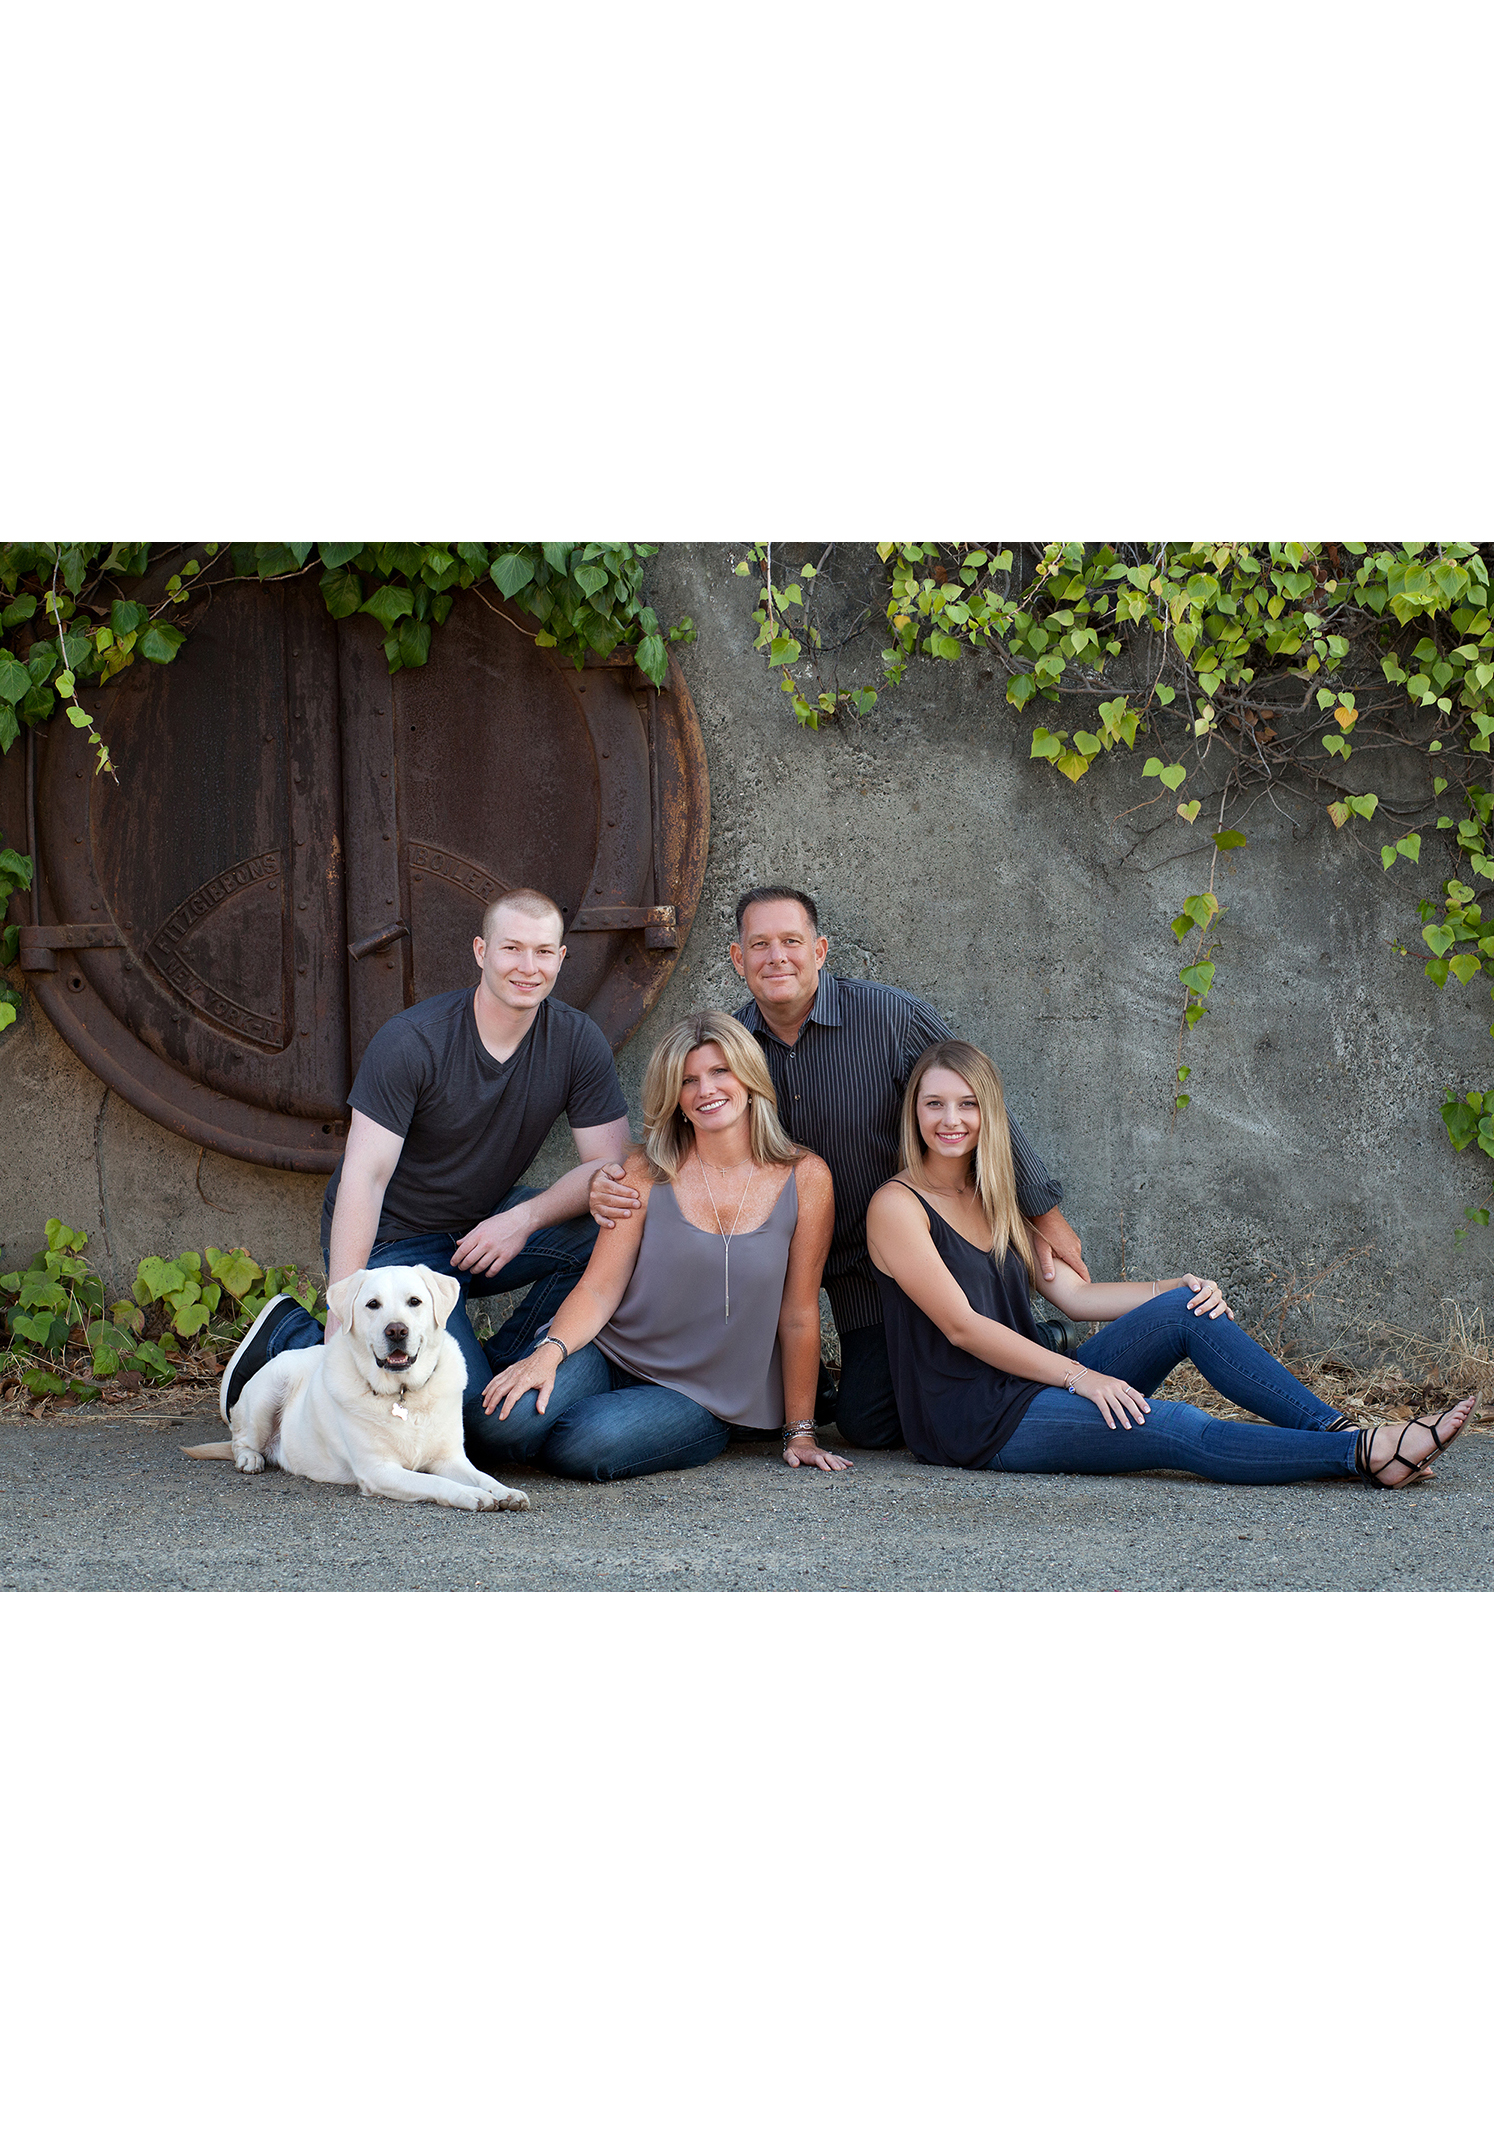 outdoor urban family portrait with dog